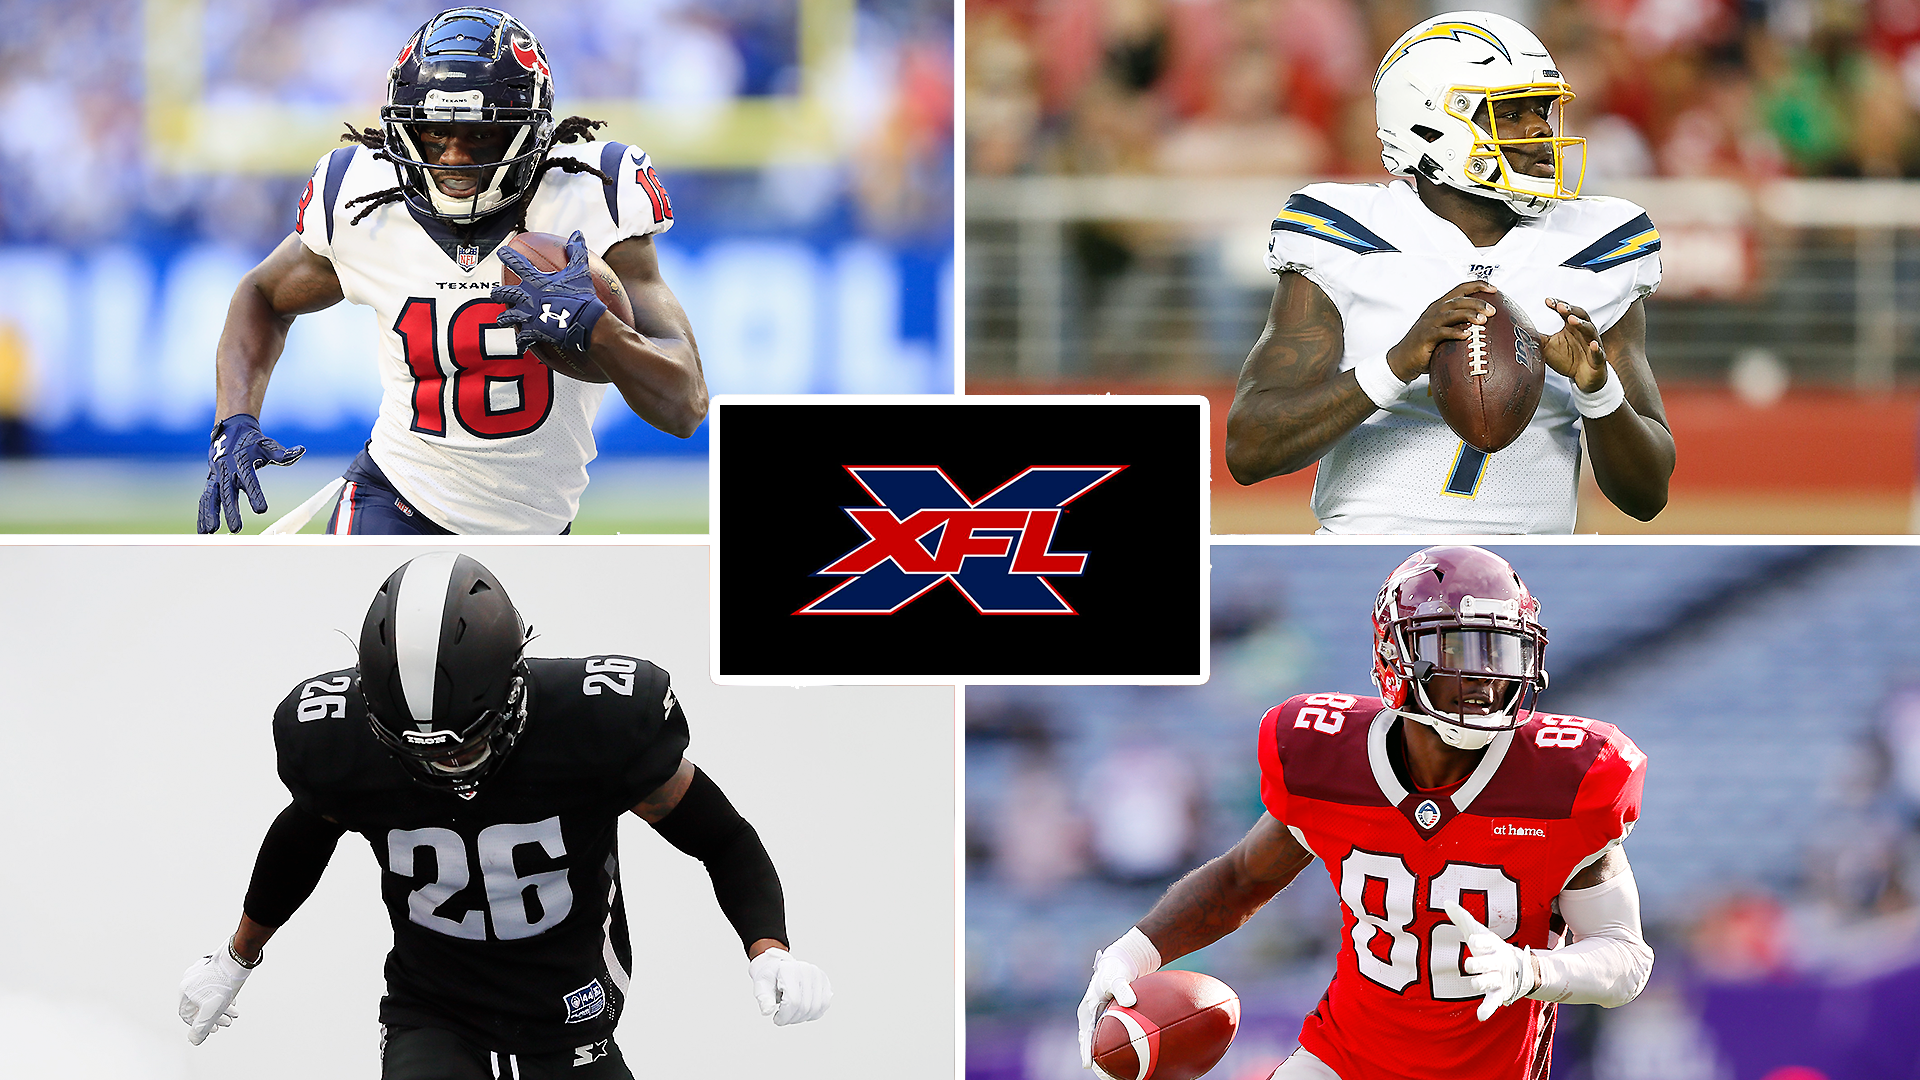 Xfl Rosters 2020 Here Are The 52 Man Rosters For All Eight Teams